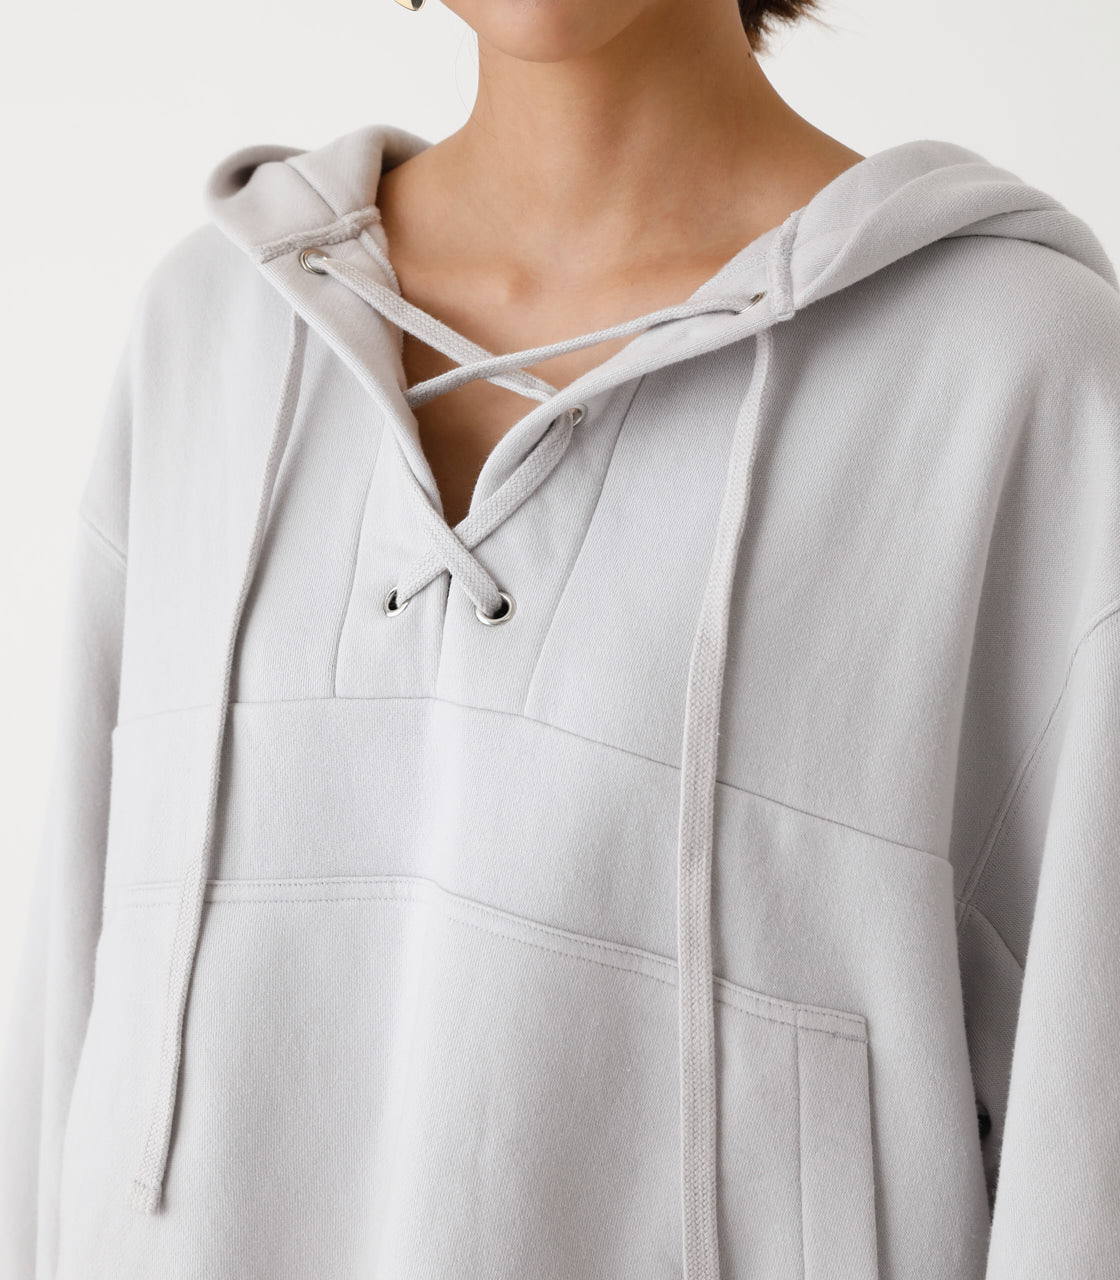 LACE-UP LOOSE HOODIE/レースアップルーズフーディ 詳細画像 L/GRY 7